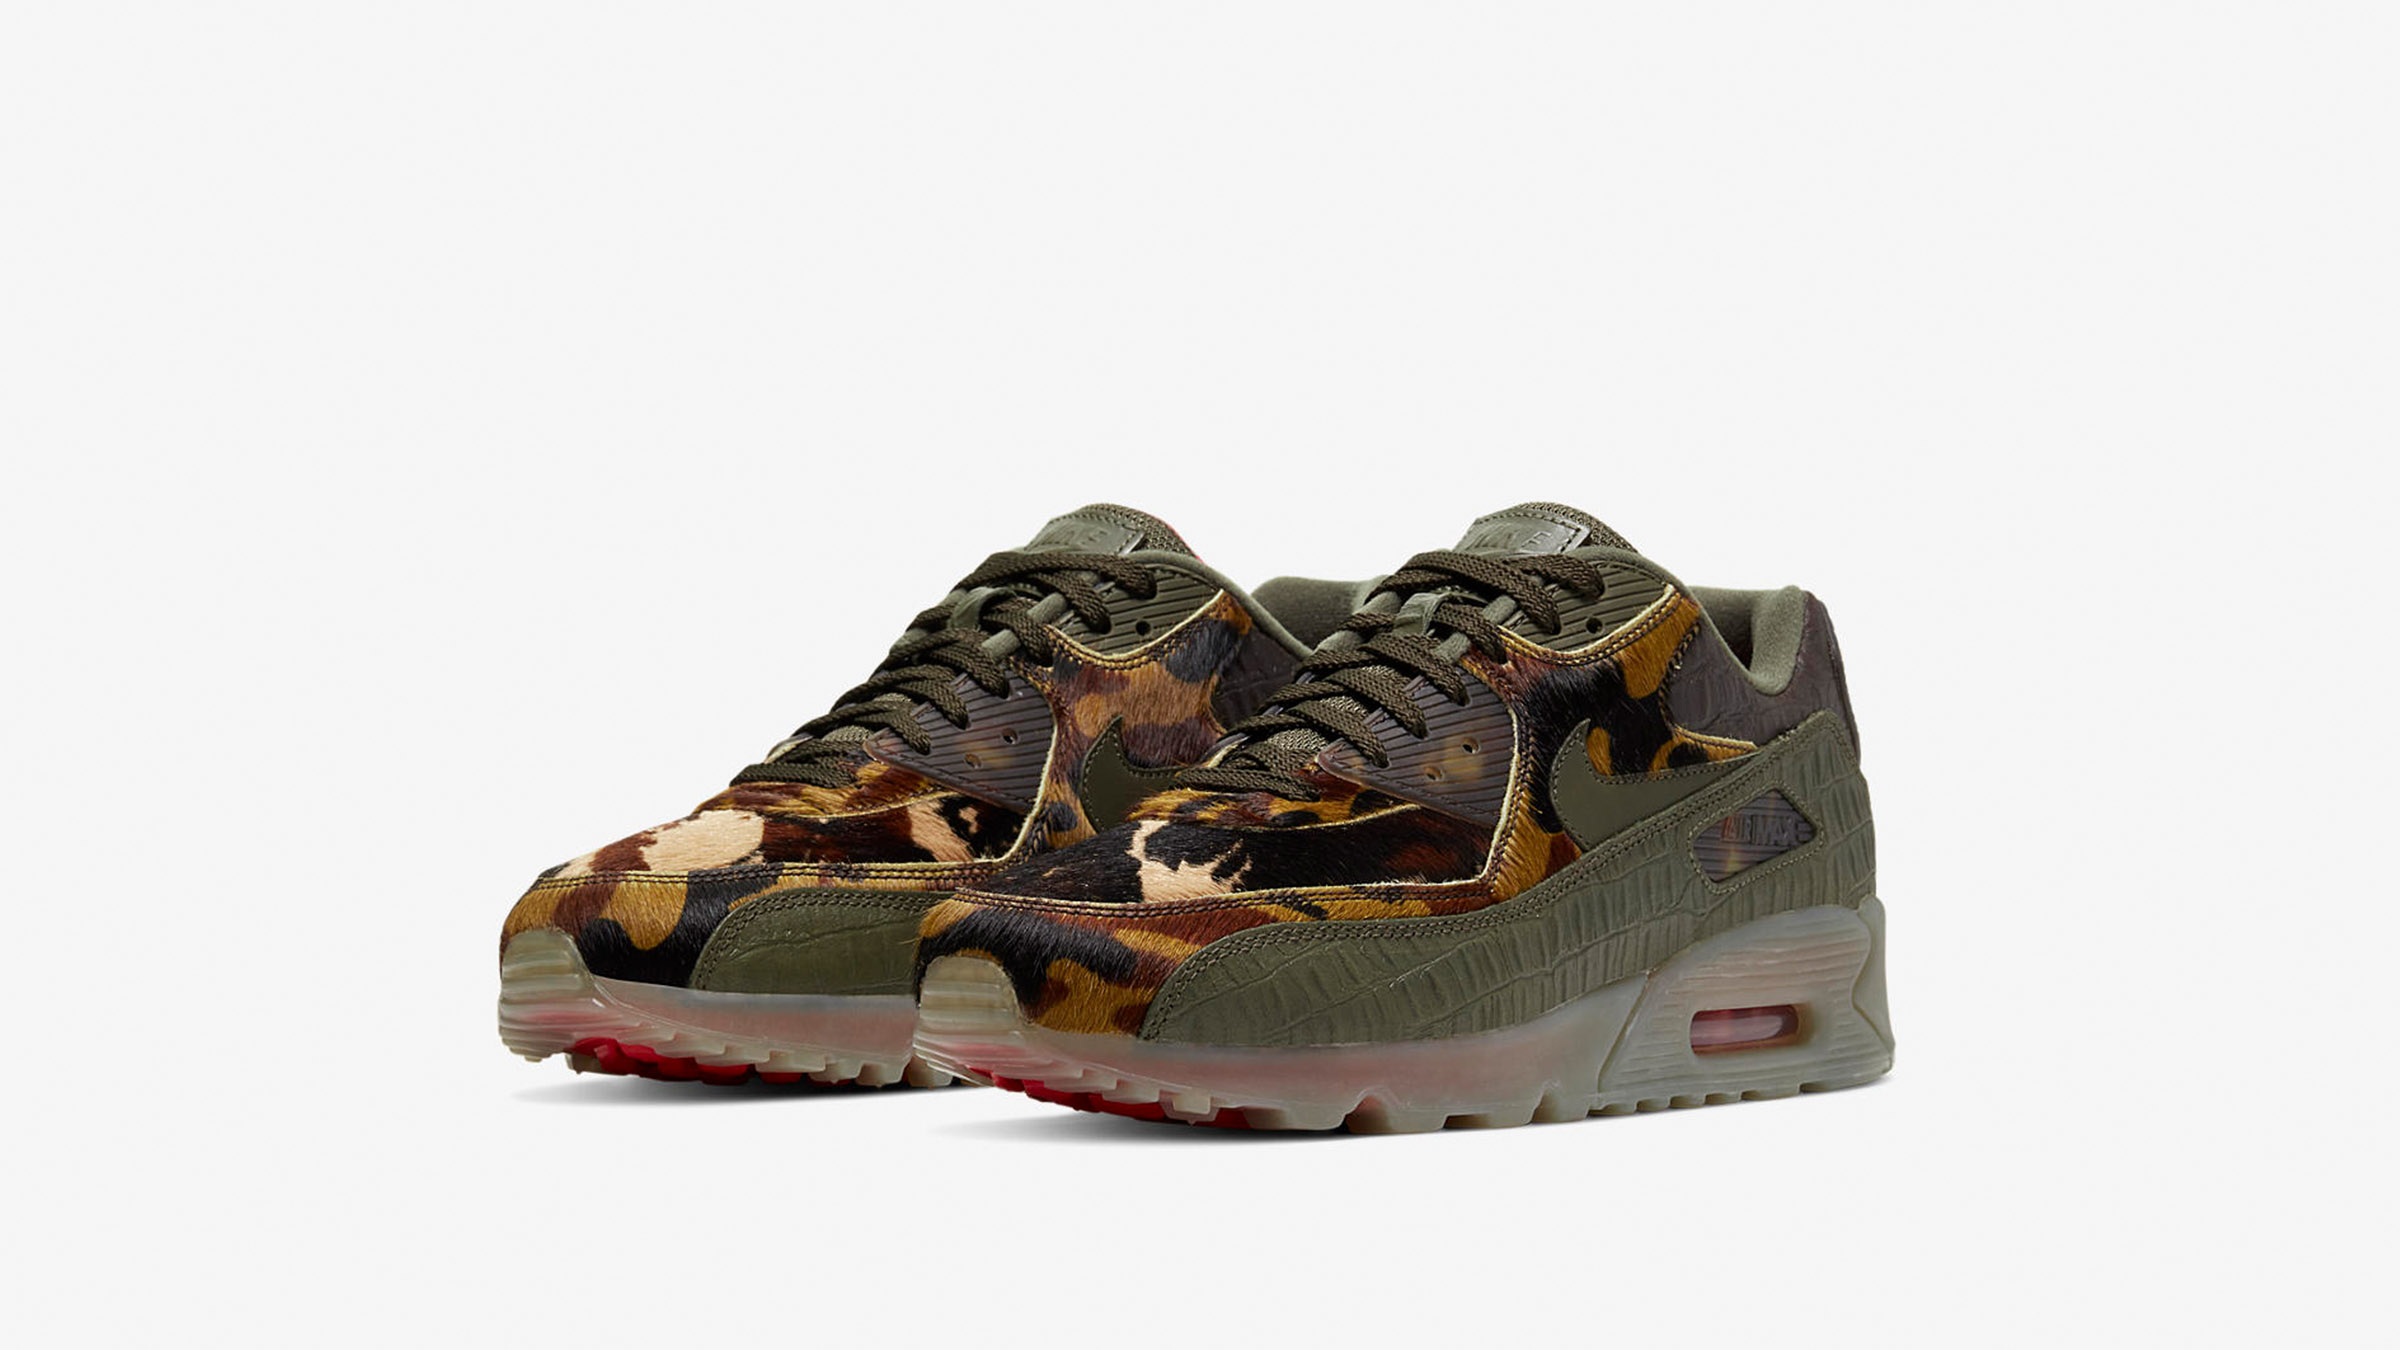 END. Features | Nike Air Max 90 'Croc Camo' Register Now